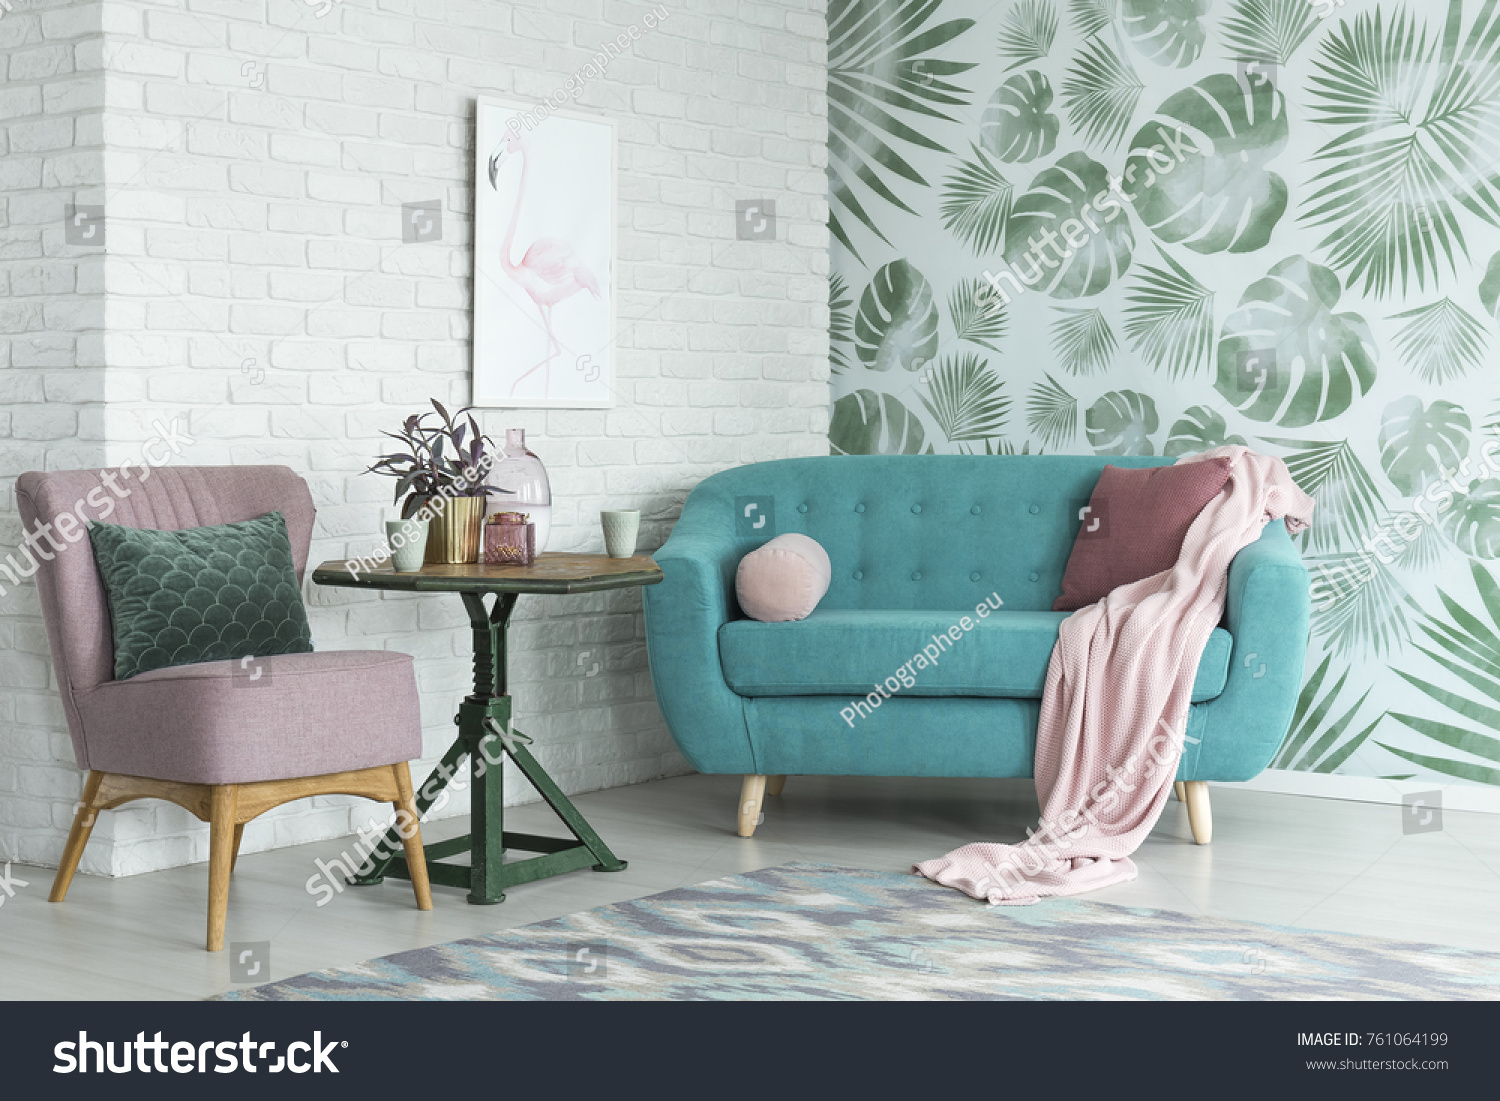 Green table with a plant between pink chair and blue sofa in floral living room with wallpaper and poster #761064199